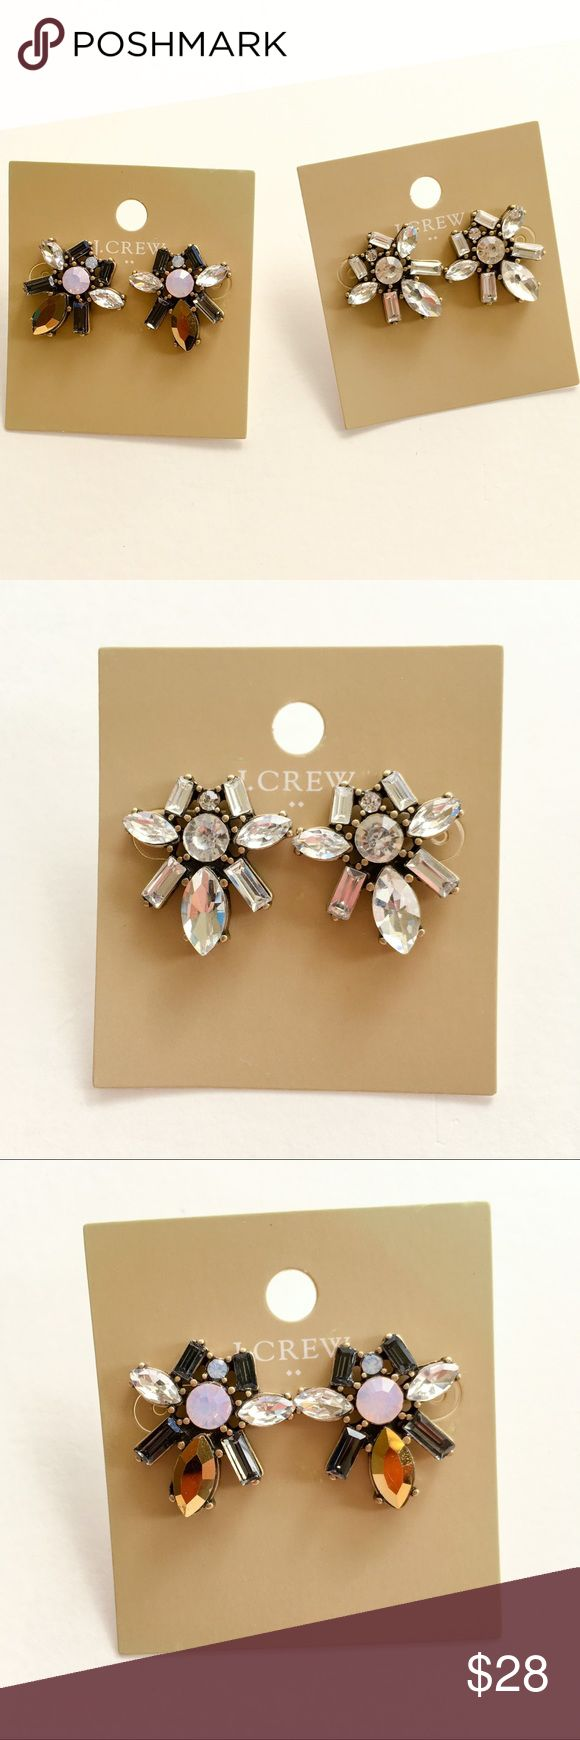 Jcrew crystal statement earrings ⚠️No trade. No model.  💰Price is firm.  🎉3 for 15% off bundle discount + 0 tax! 🎉Checkout more news on FB @Jane's Closet & IG @shopjanes_closet  😍Details: Brand new without tag. No price tag. Material unknown. Price is for each pair. Details see pictures. J. Crew Jewelry Earrings